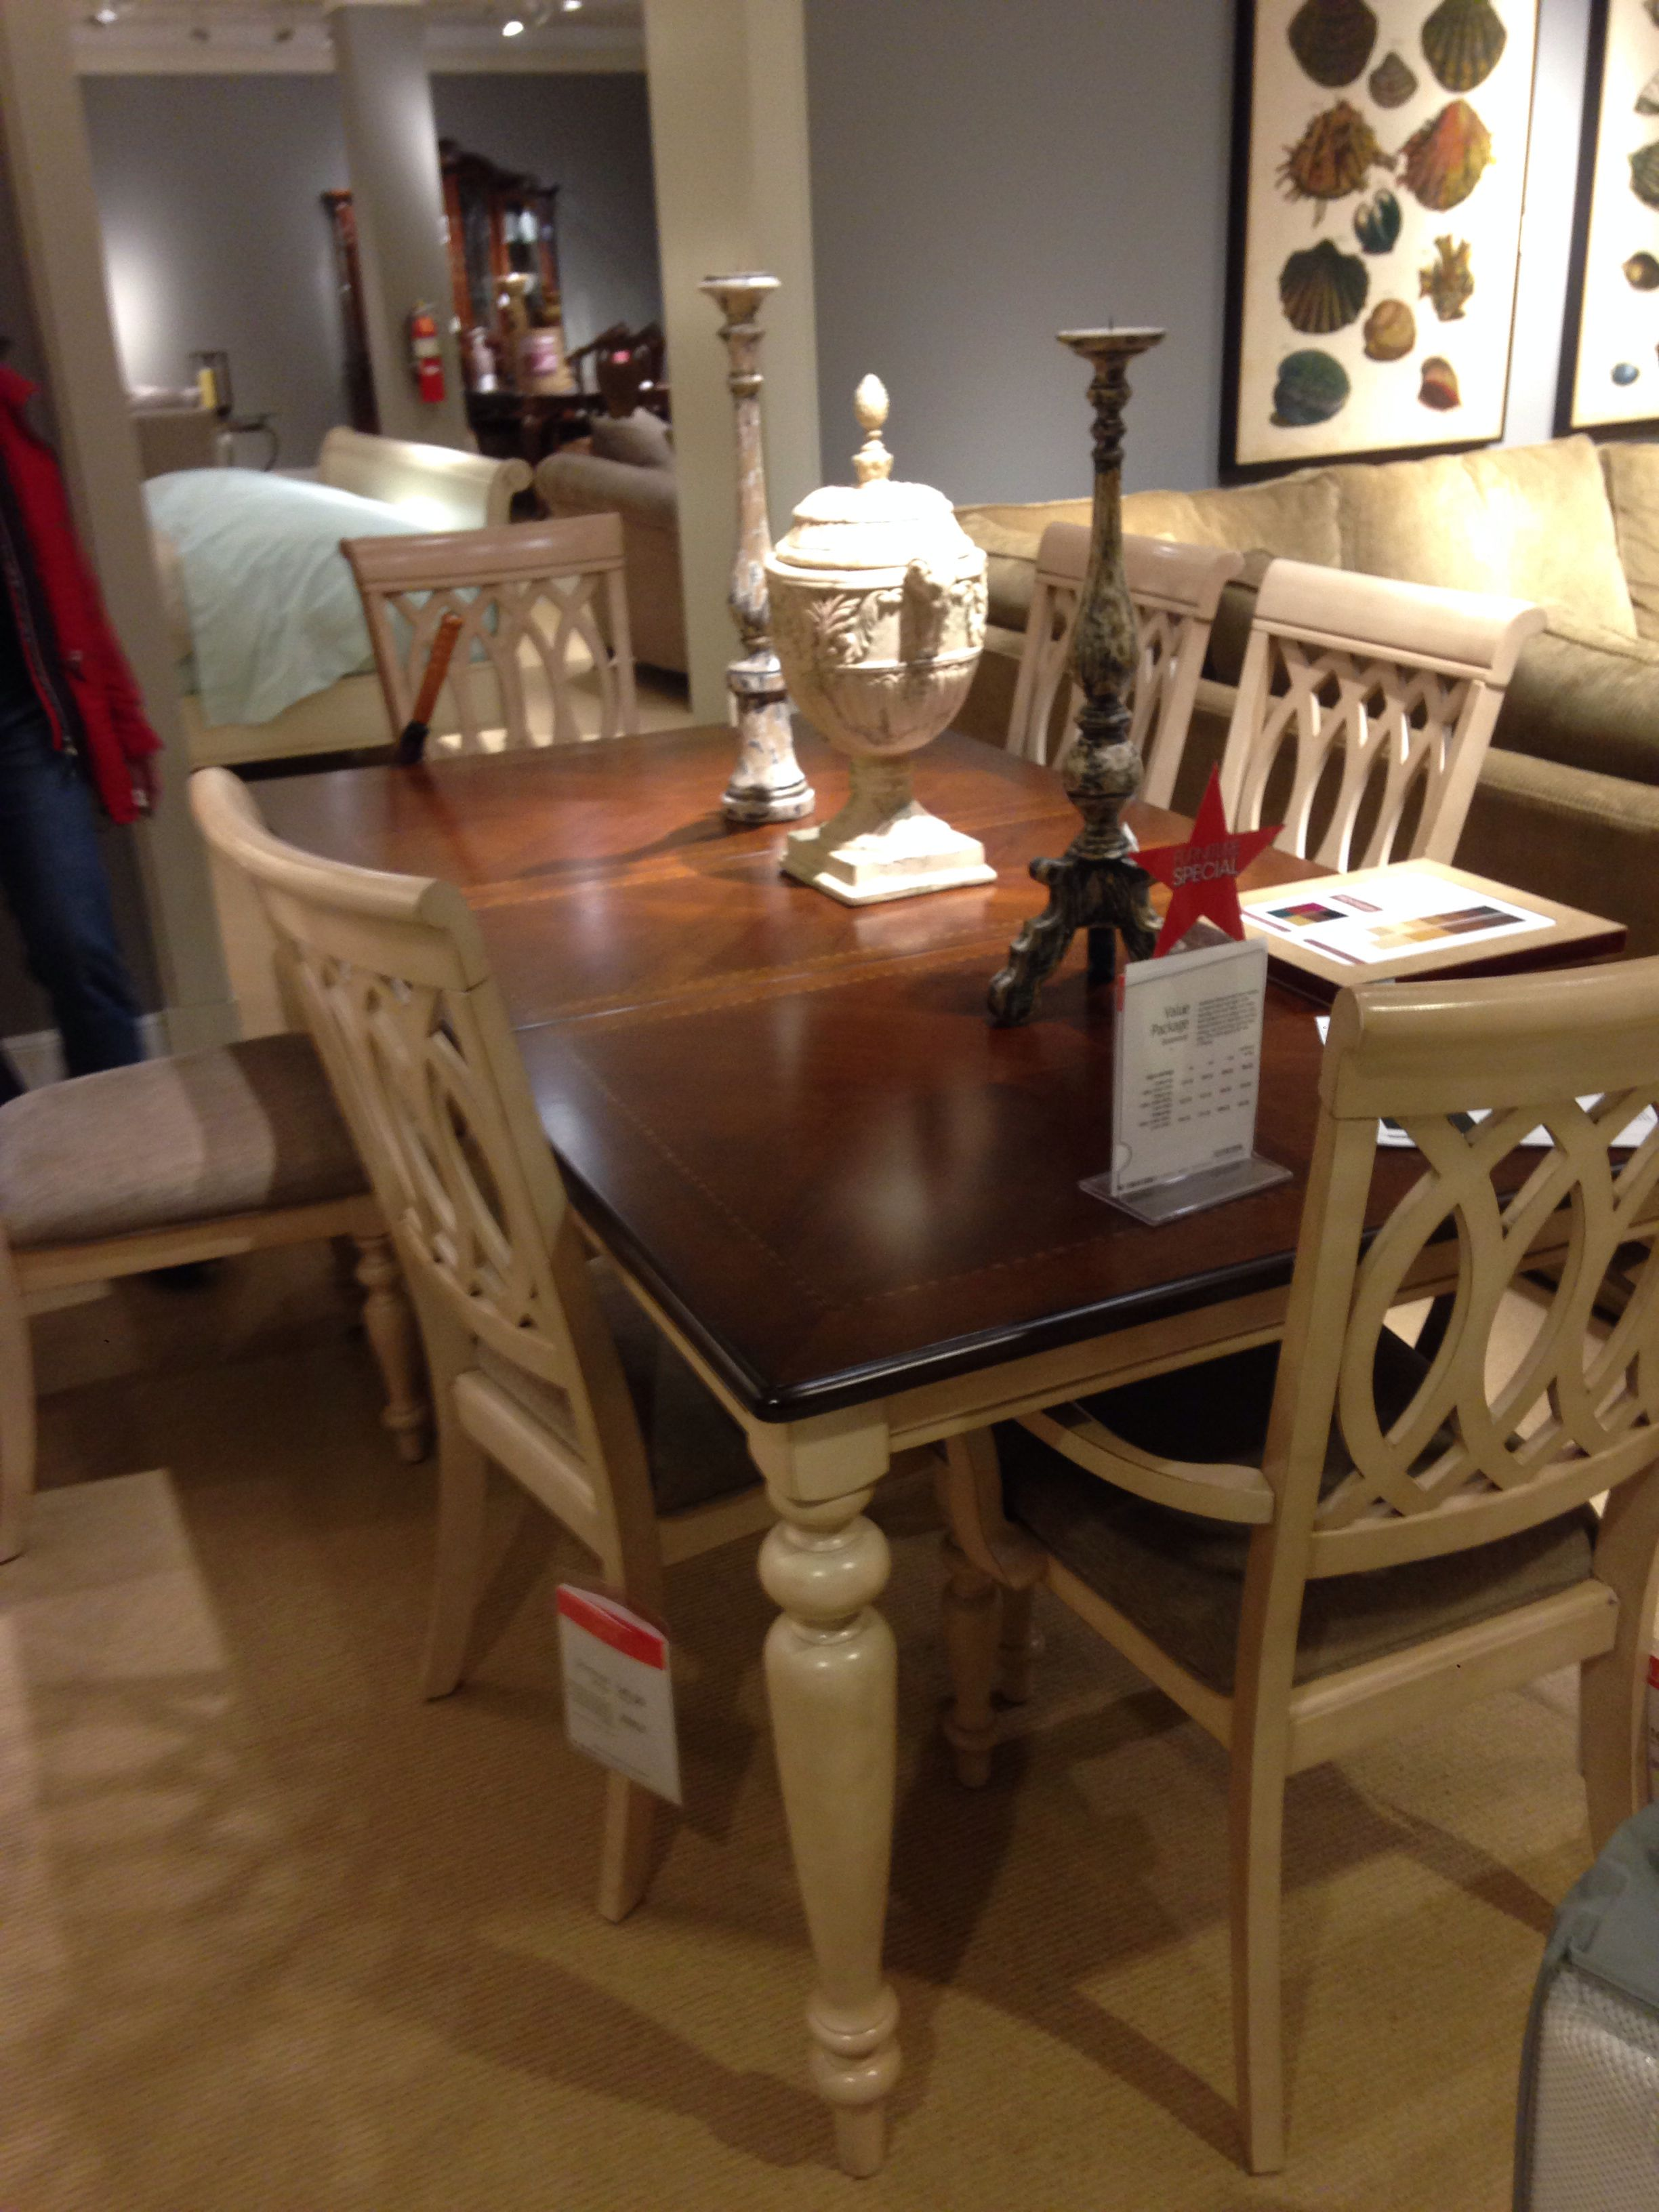 Dovewood Dining Set 2 Tone Cherry Wood Veneer And Antique White Macy S Furniture Gallery Paramus Macy Furniture Home Decor Dining